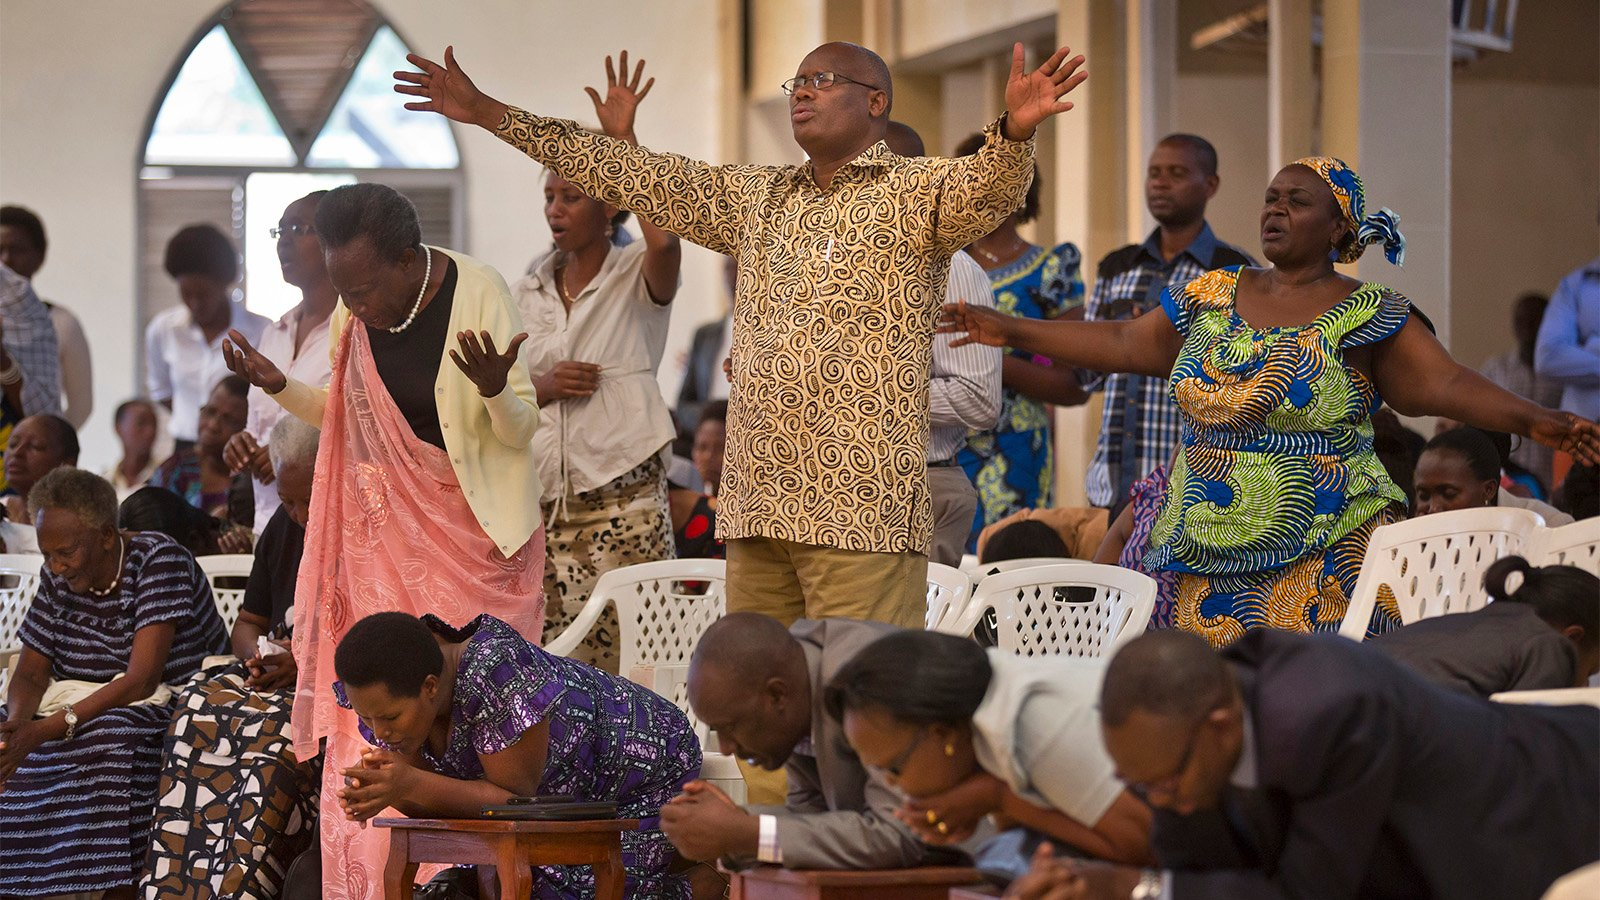 Banned from meeting in church, Rwandan worshippers gather at